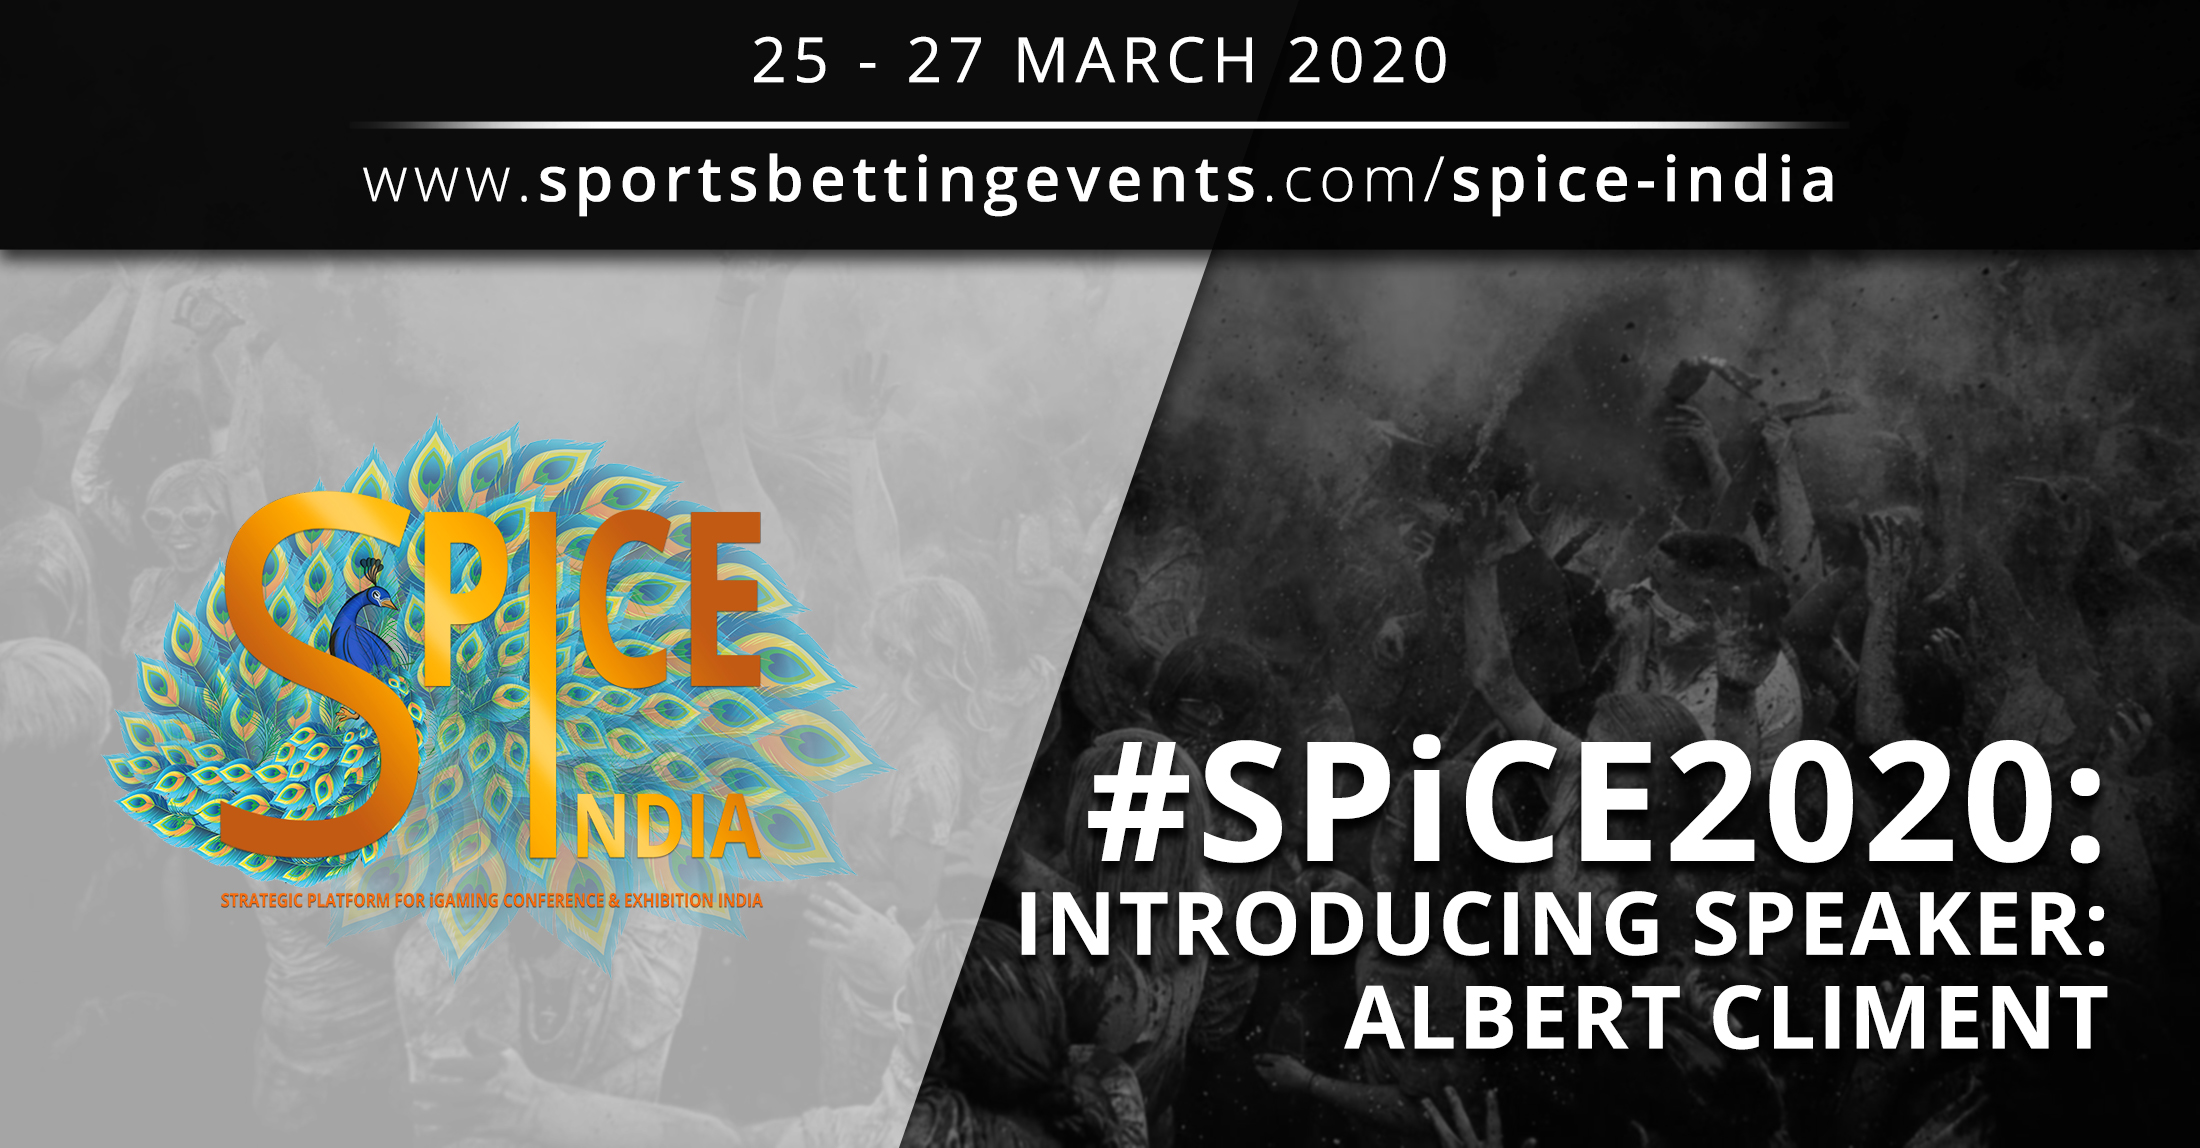 Press Release: SPiCE 2020: Less than two months to go to SPiCE 2020: Interview with Albert Climent